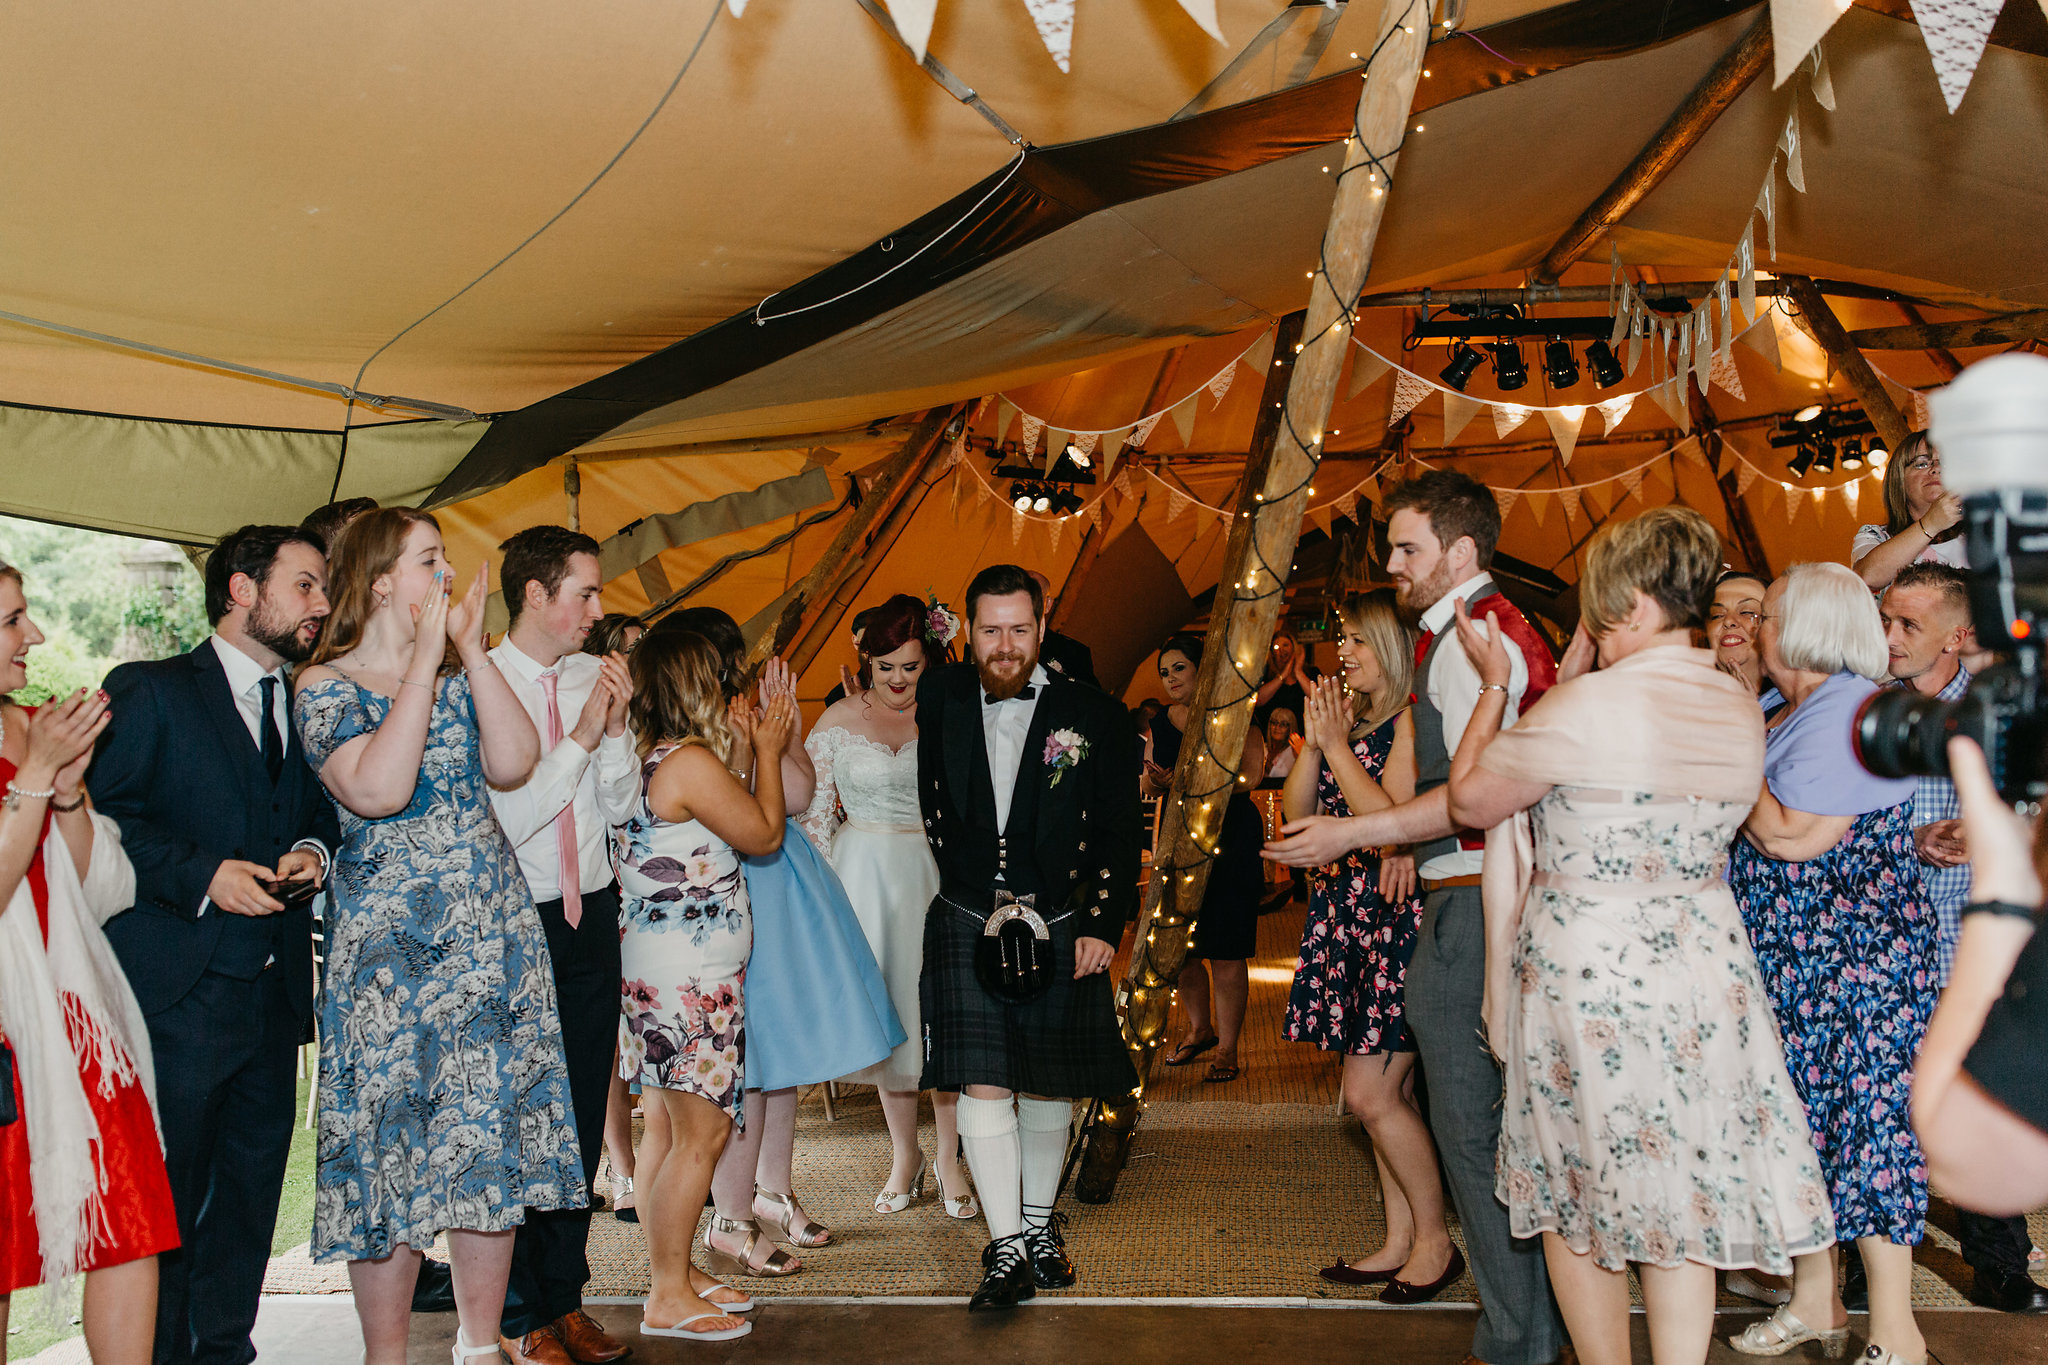 PapaKata Teepee wedding at Greenbank Gardens Scotland - Arriving in Style